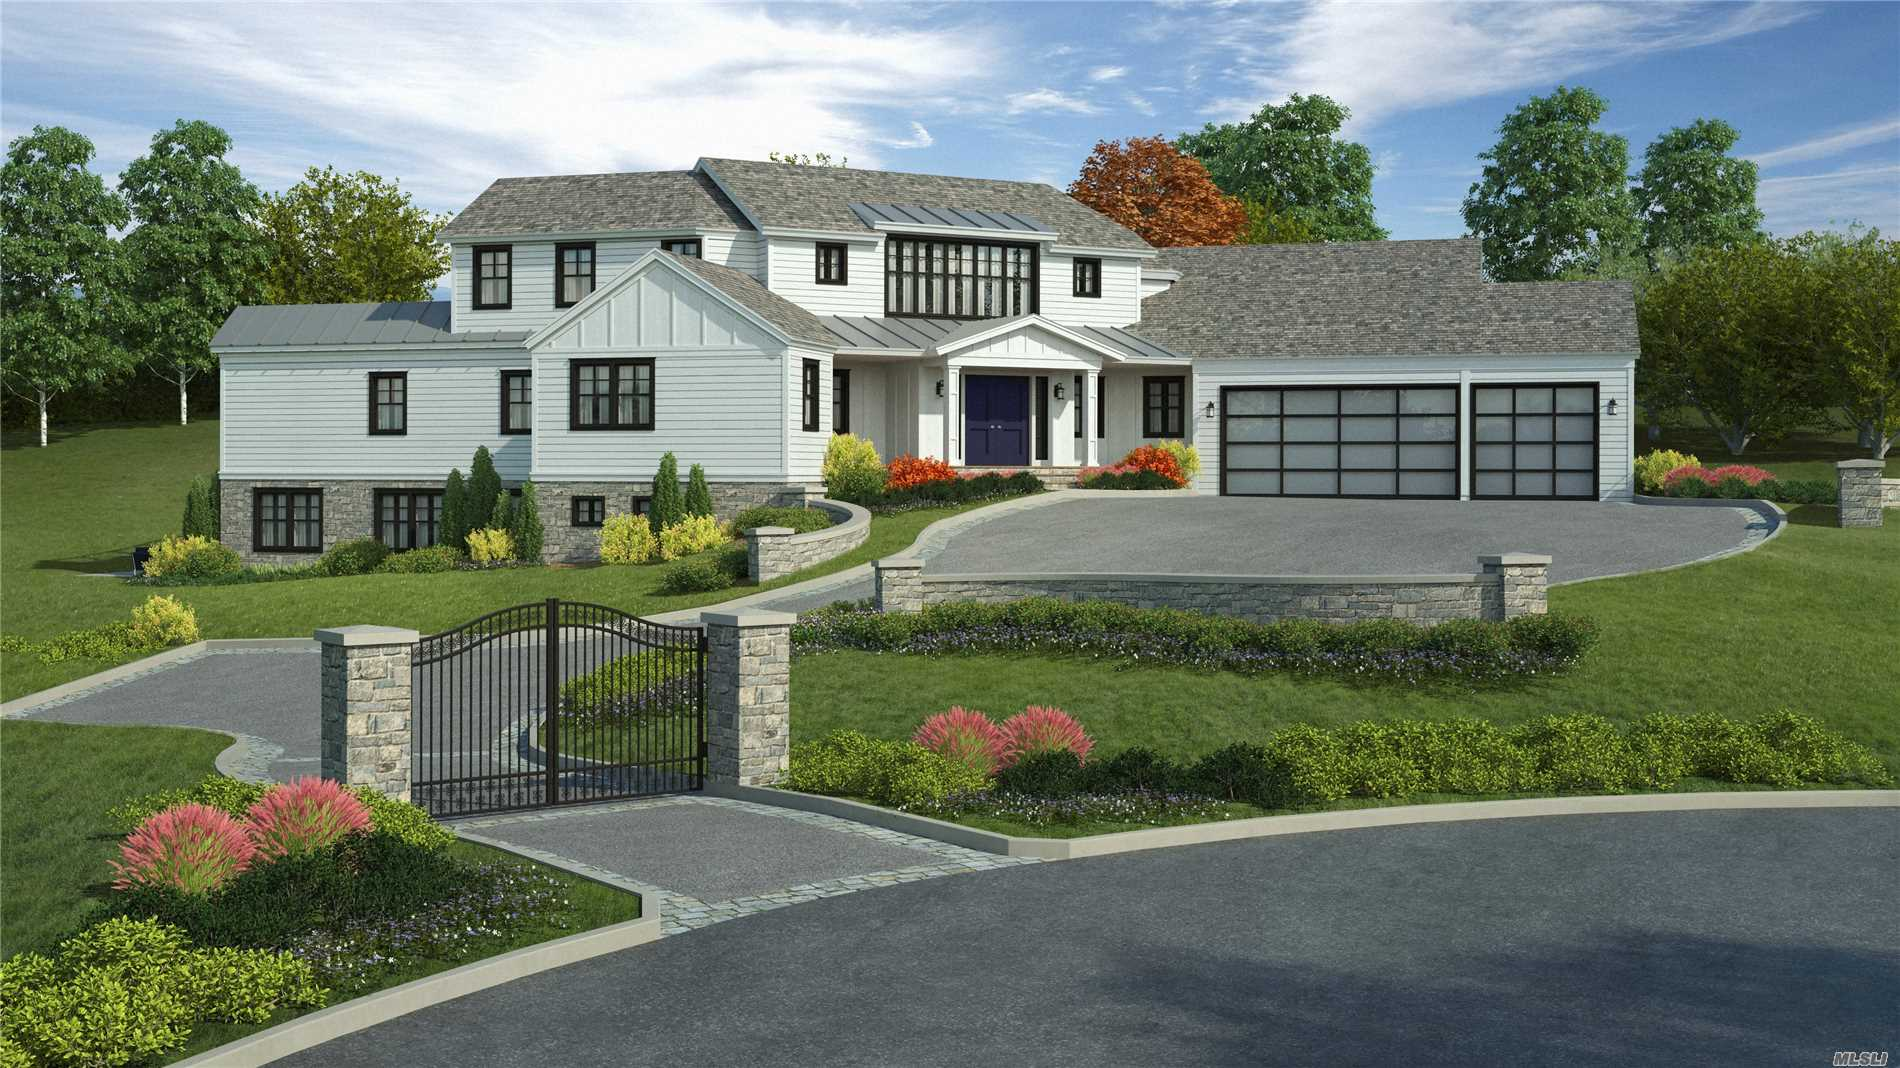 Spectacular Modern Farm Ranch New Construction By Renowned Hampton's Builder.Private Setting & convenient Location, This Home Has It All! High-End Finishes & Materials, Open Modern Floor Plan, 22Ft High Great Room With Walls Of Glass, 10 Foot High Ceilings Throughout Including The 3000 Sqft Lower Level, Oversized 3 Car Garage For Today's Xtra Long Suvs, 4 Bedrooms Plus A Grand Master Suite!Interior Pictures For Workmanship Purposes Only-Features May Vary.